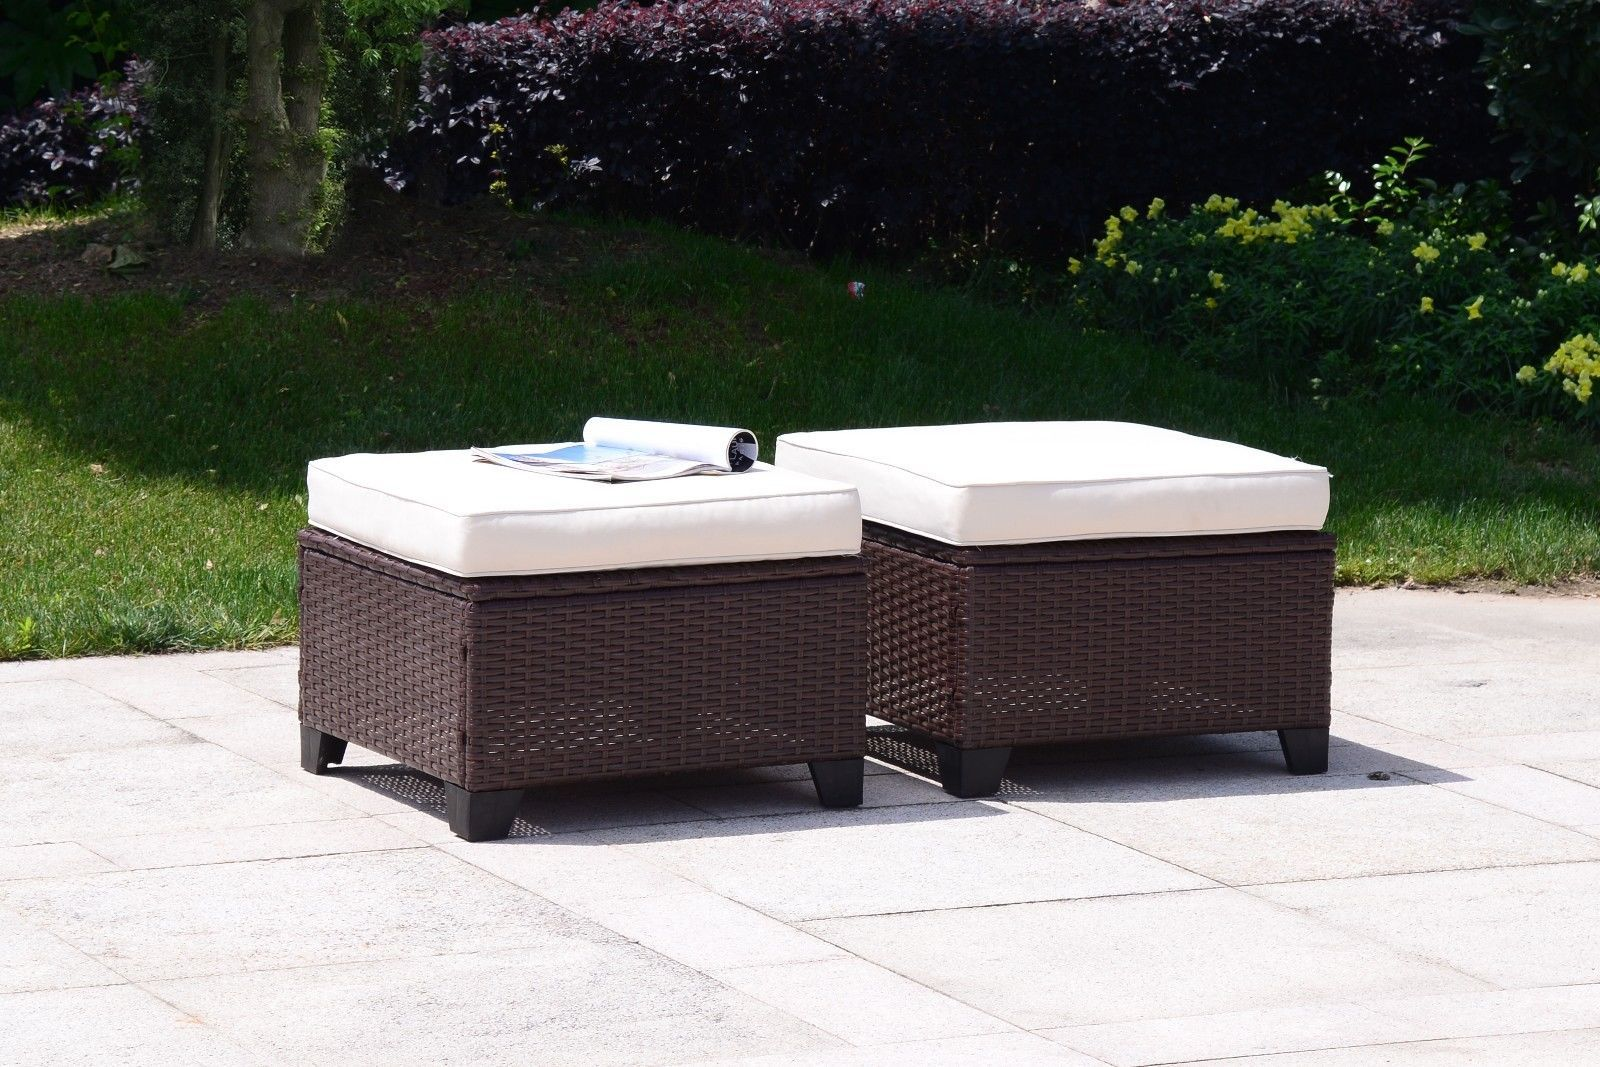 5 PC Wicker Rattan Furniture Set Sofa Cushioned Patio Lawn Loveseat Sectional